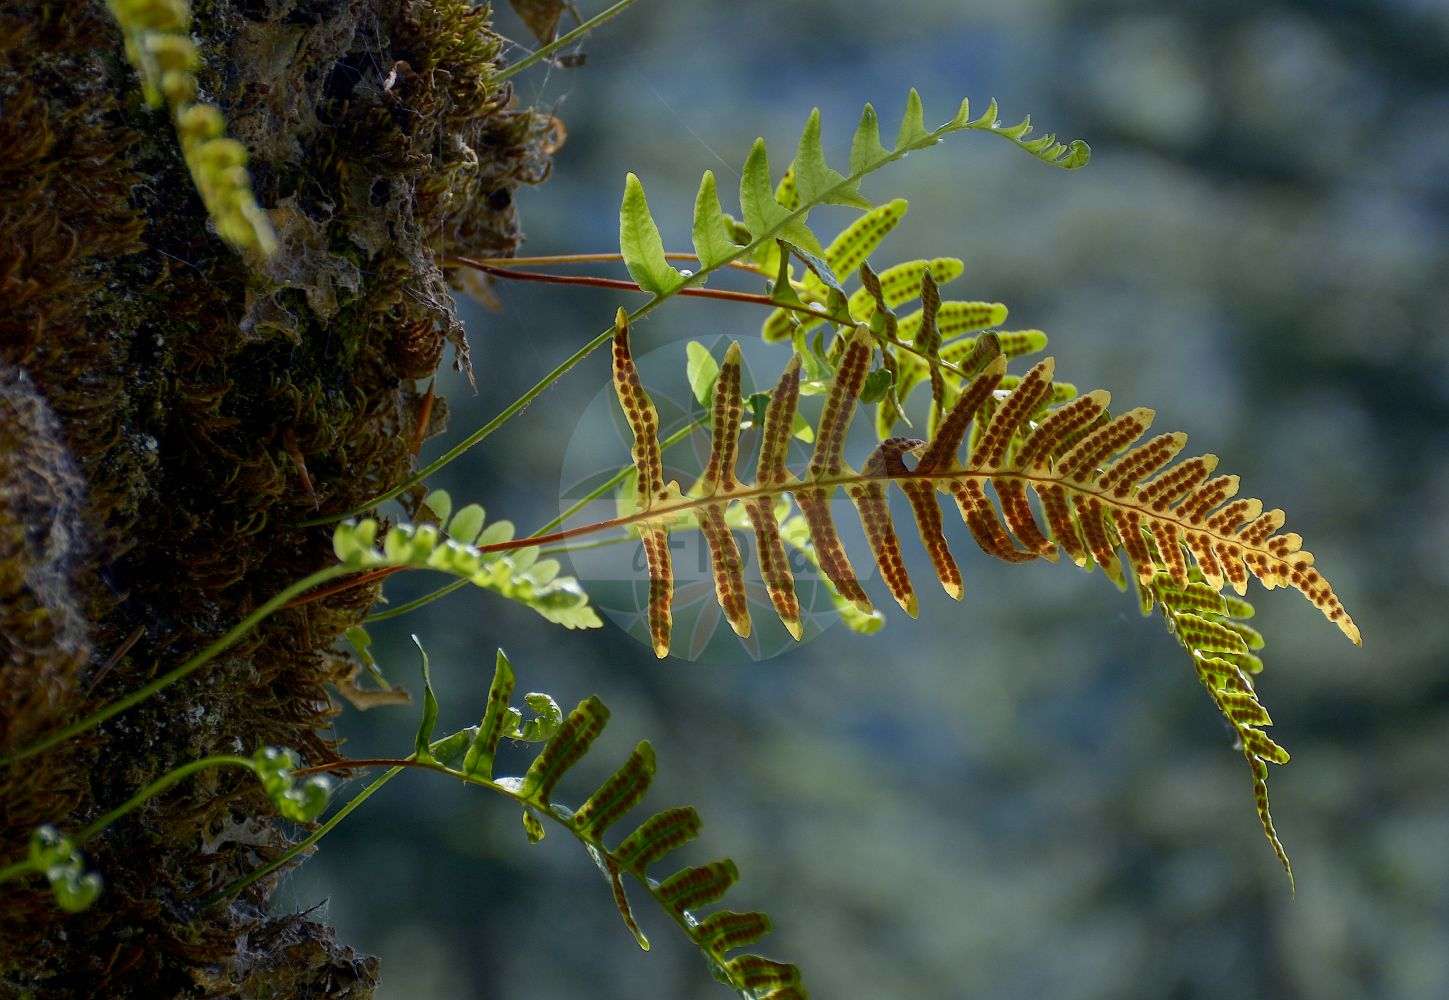 Foto von Polypodium vulgare (Gewoehnlicher Tuepfelfarn - Polypody). Das Foto wurde in Schachen, Garmisch-Partenkirchen, Bayern, Deutschland, Alpen aufgenommen. ---- Photo of Polypodium vulgare (Gewoehnlicher Tuepfelfarn - Polypody).The picture was taken in Schachen, Garmisch-Partenkirchen, Bavaria, Germany, Alps.(Polypodium vulgare,Gewoehnlicher Tuepfelfarn,Polypody,subsp. issaevii,Common ,Polypodium,Tuepfelfarn,Polypodies,Polypodiaceae,Tuepfelfarngewaechse,Polypody family)